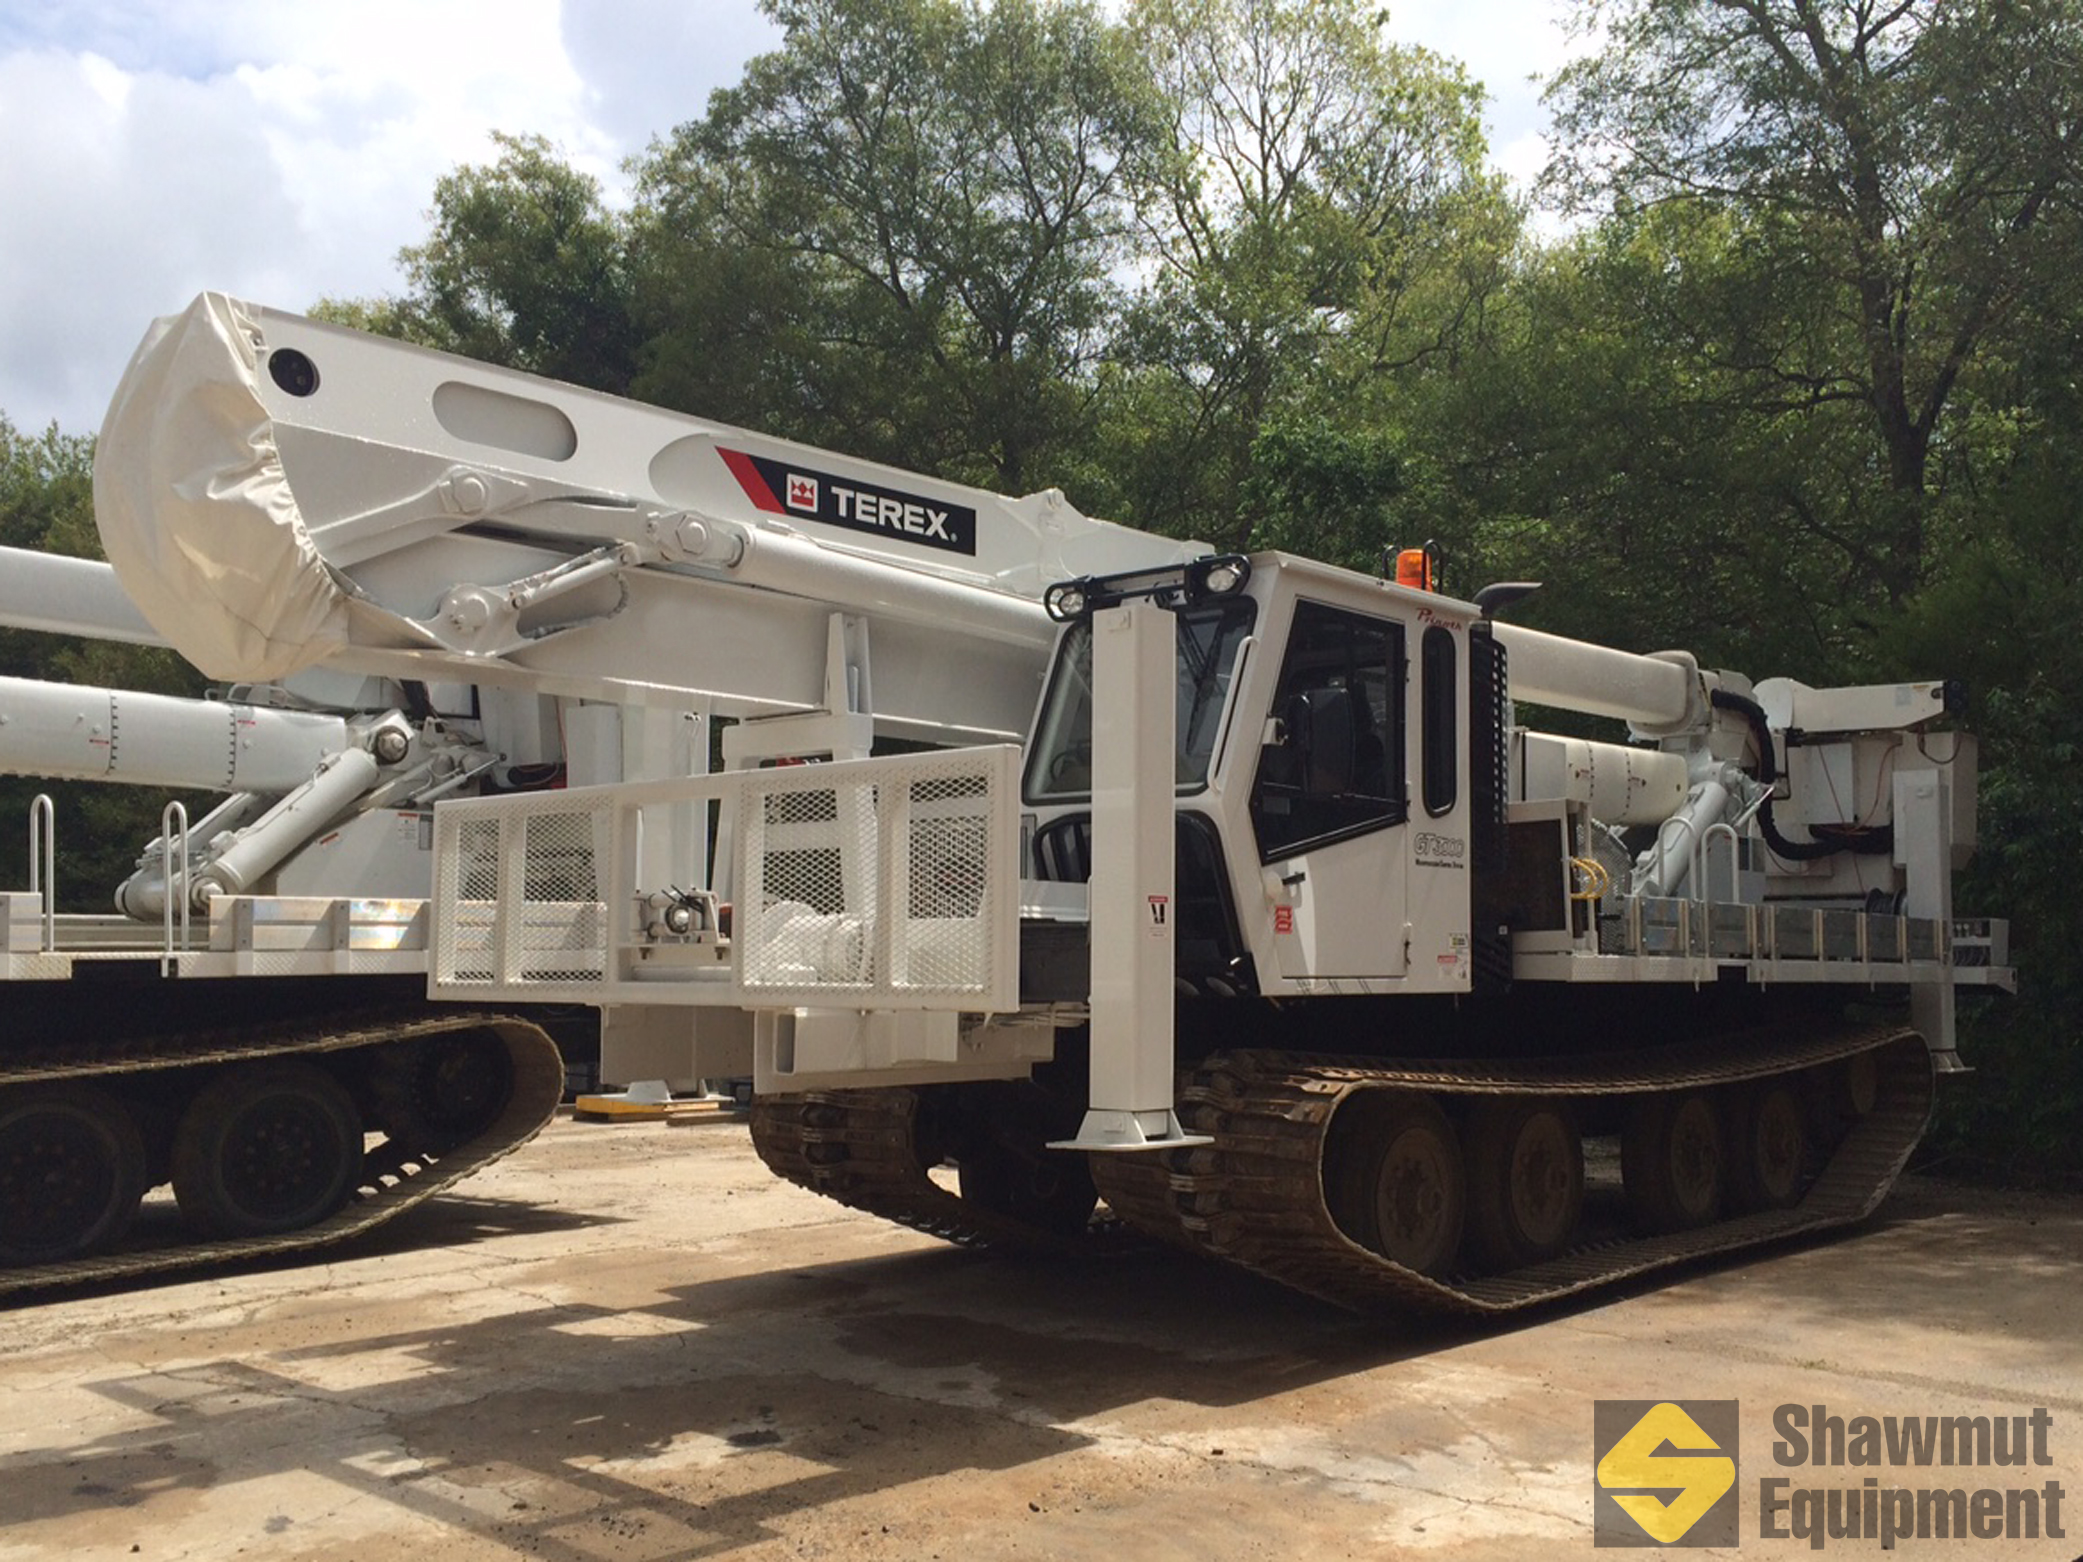 2015 Terex TM100 - 100 Ft Tracked Material Handling Bucket